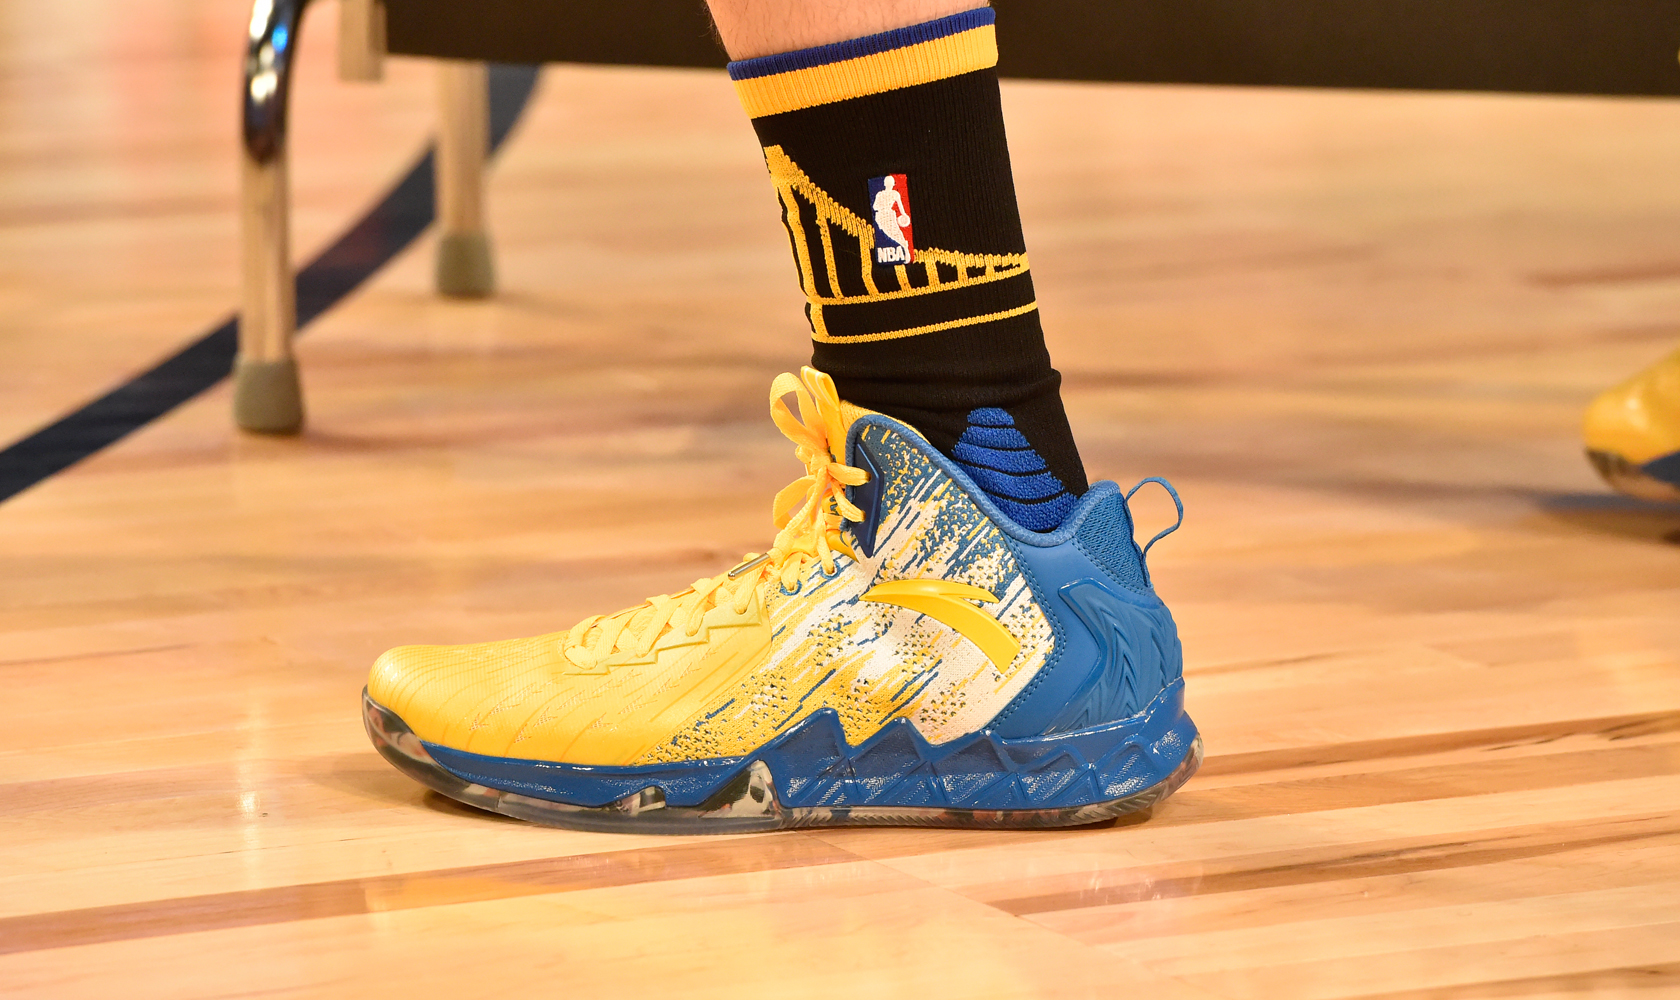 Worn by Klay Thompson during the NBA Three-Point contest